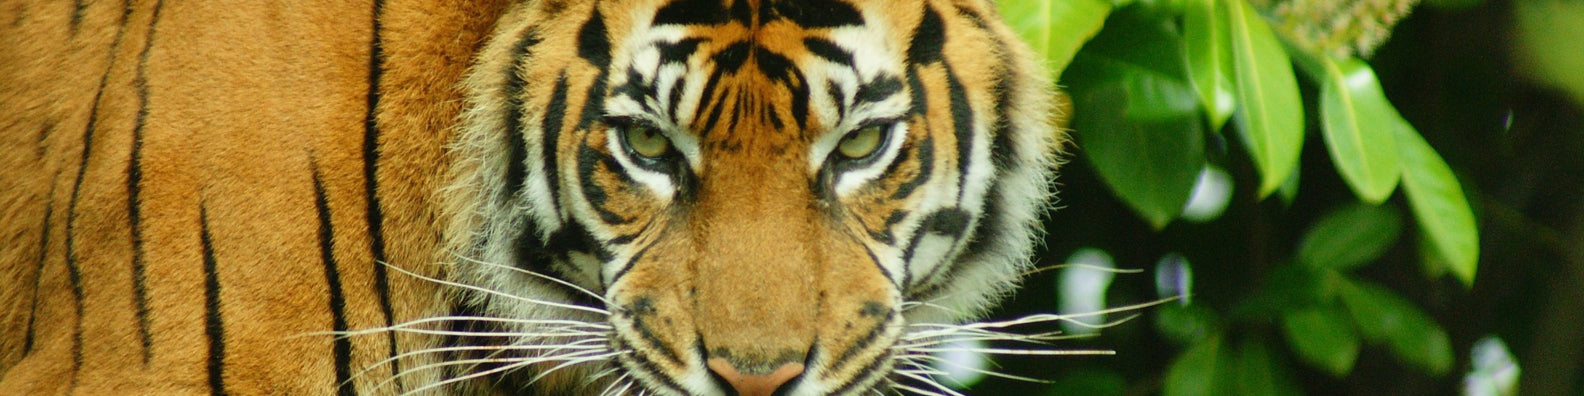 Sumatran tigers on path to recovery